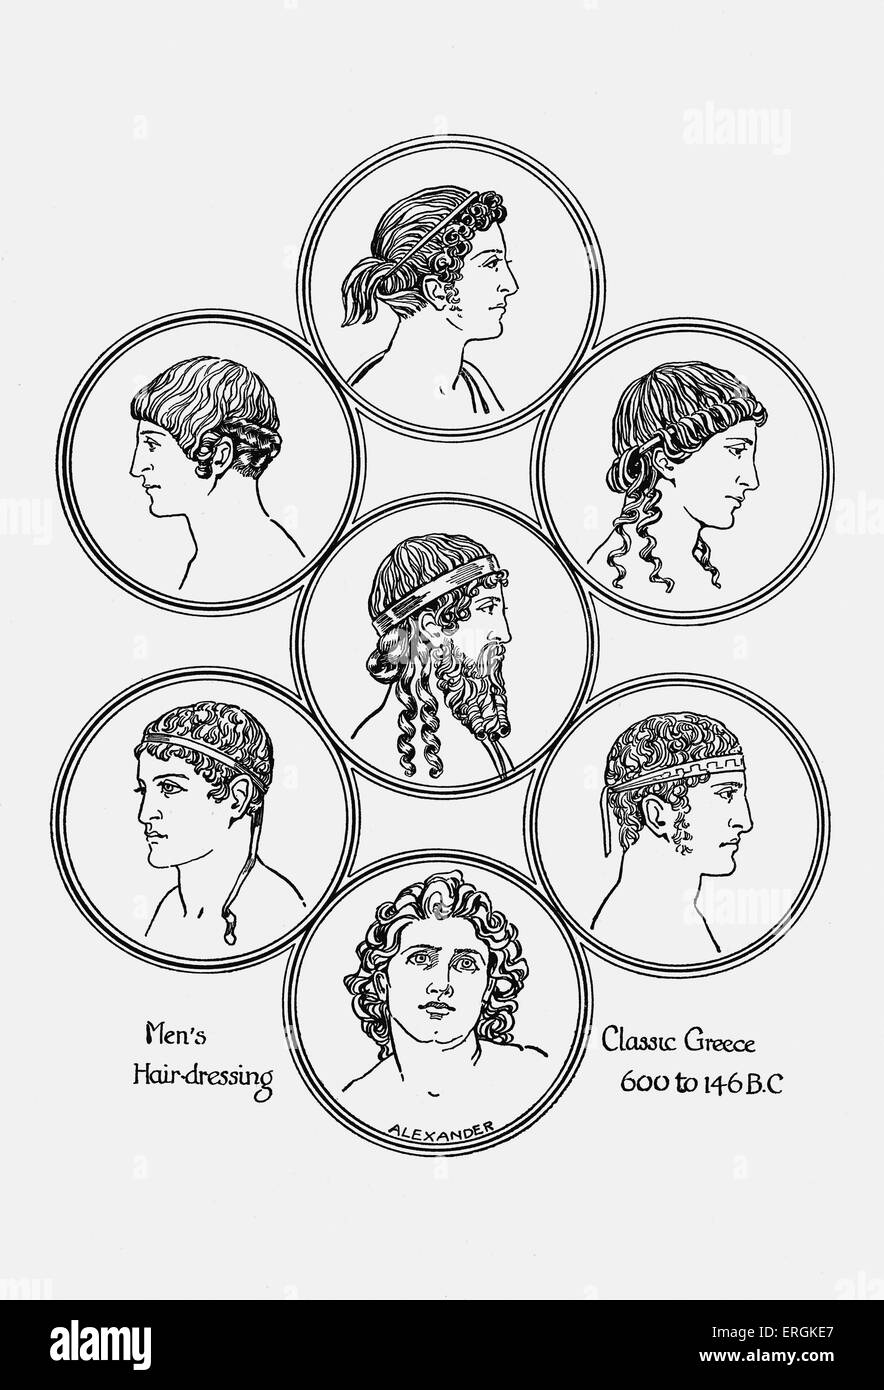 Ancient Greek hairstyles. Example of men's hairdressing in classical Greece, 600- 146 BC.  Herbert Norris artist - Stock Image